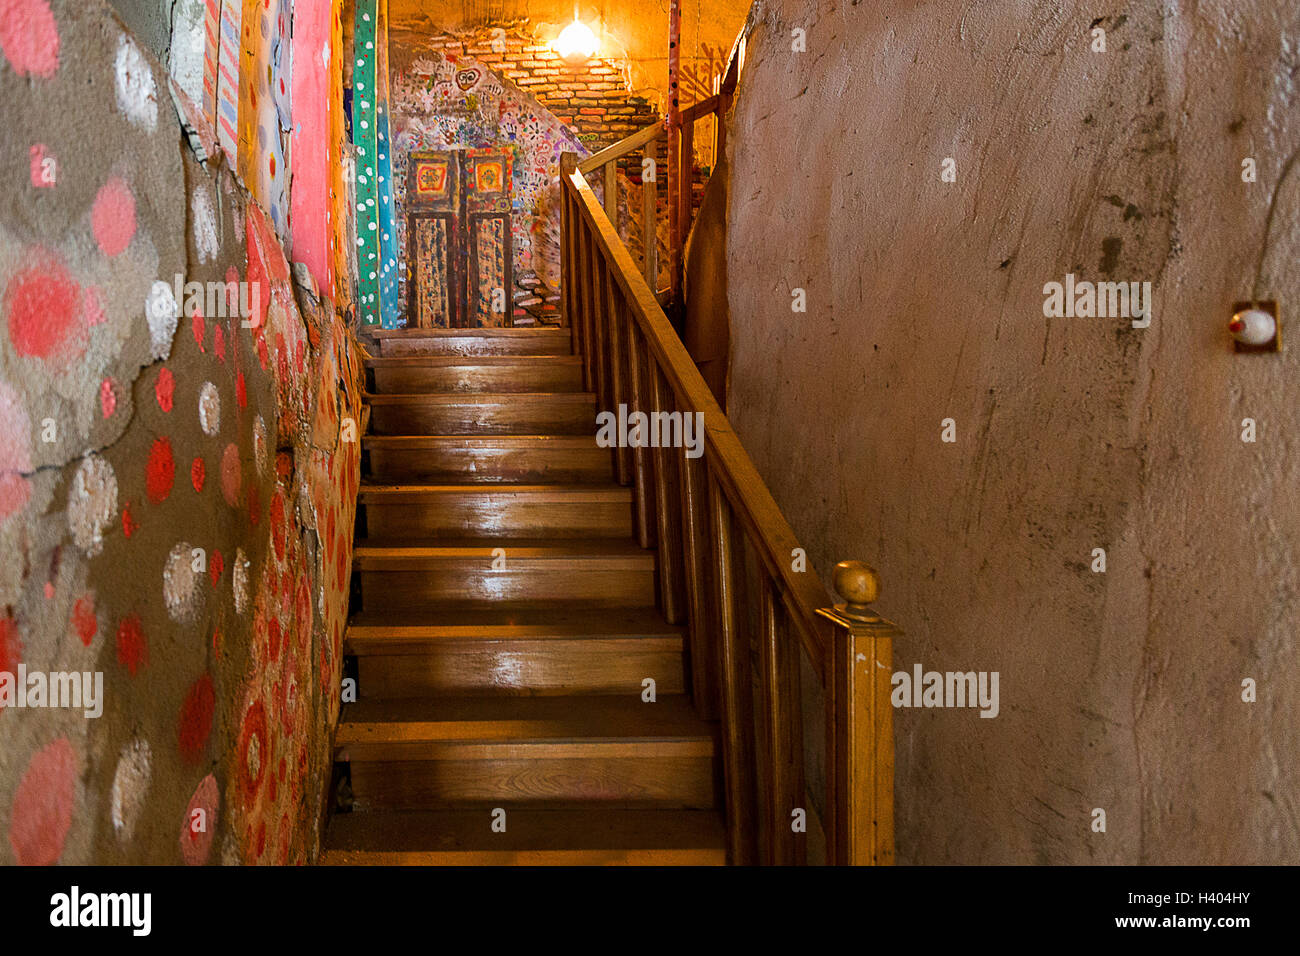 Artsy staircase. - Stock Image